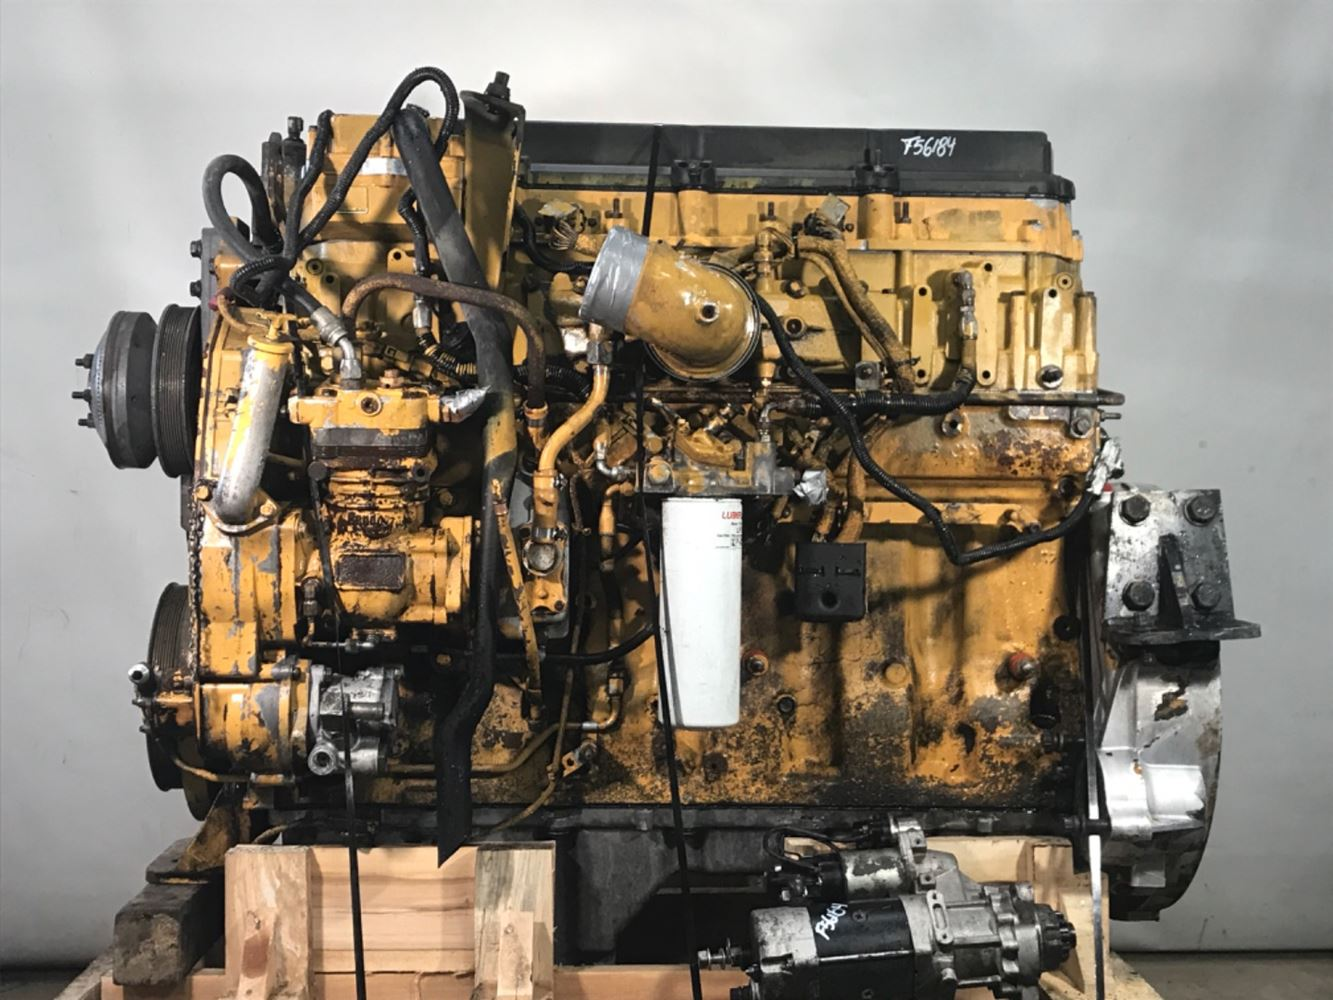 2005 CATERPILLAR C13 ENGINE ASSEMBLY TRUCK PARTS #698994